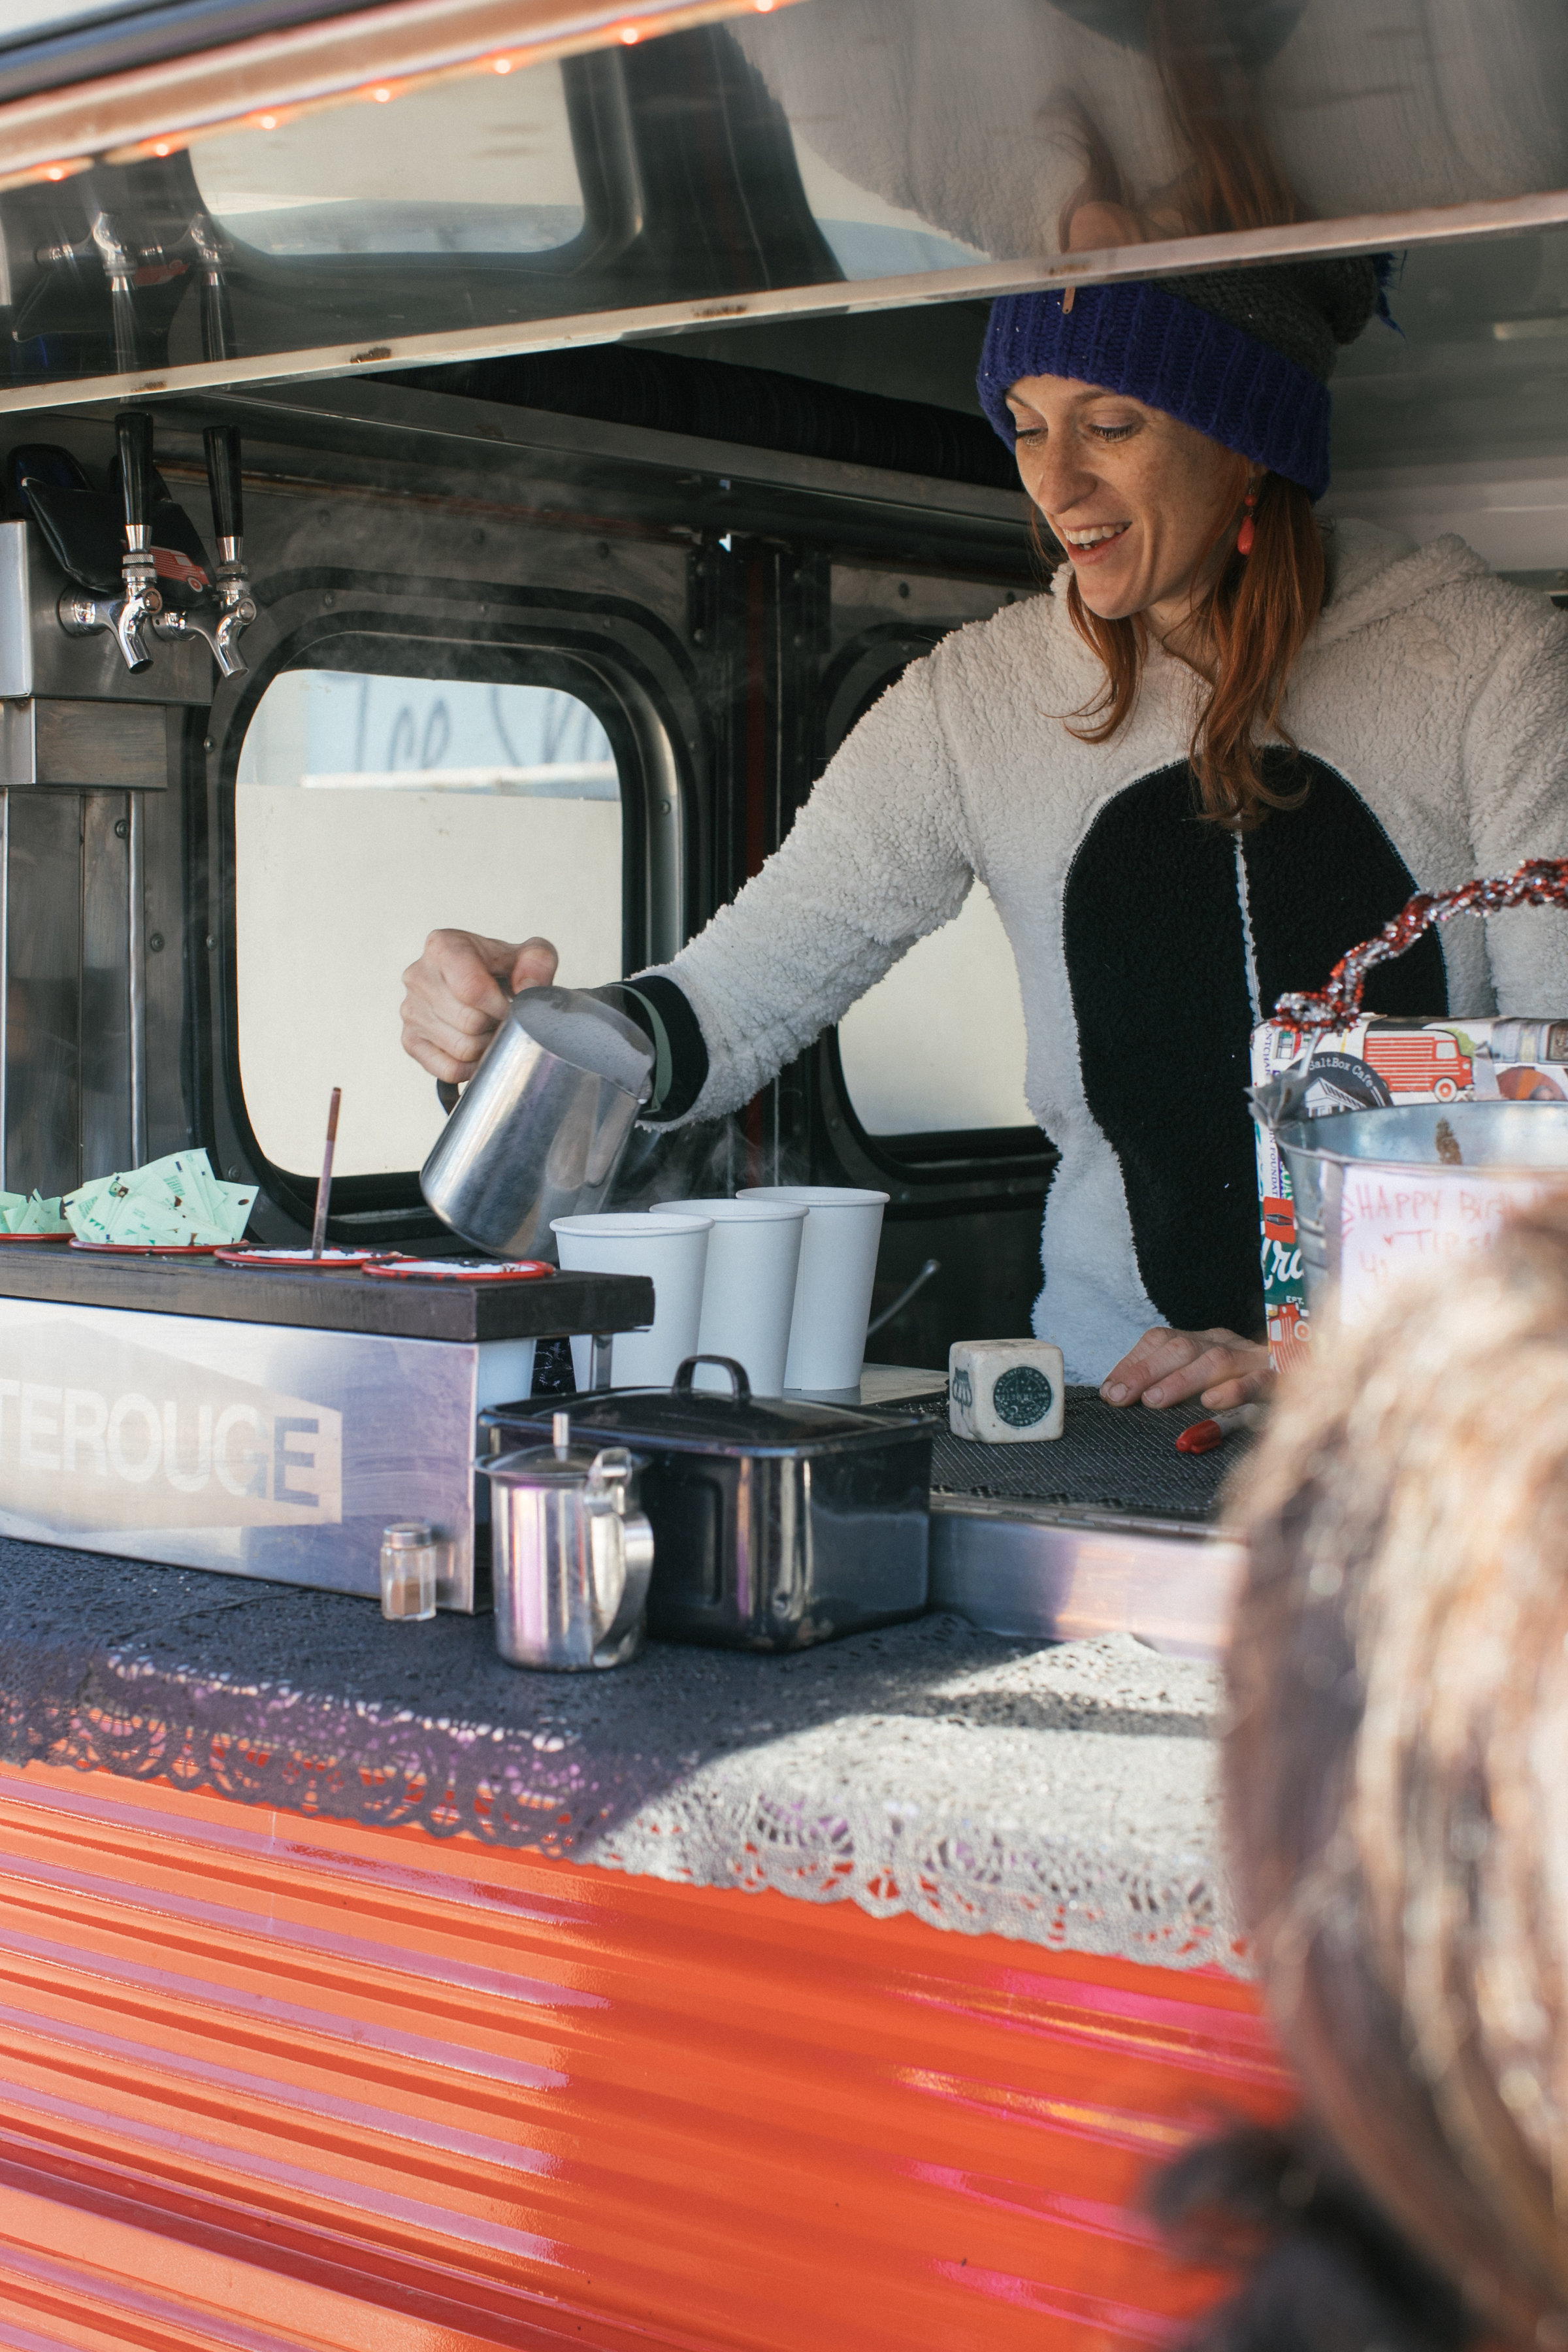 Julie of NOLA-based Petite Rouge Coffee wears a onesie and pours specialty espresso drinks from her vintage 1970 Citroen H-Van.  OA